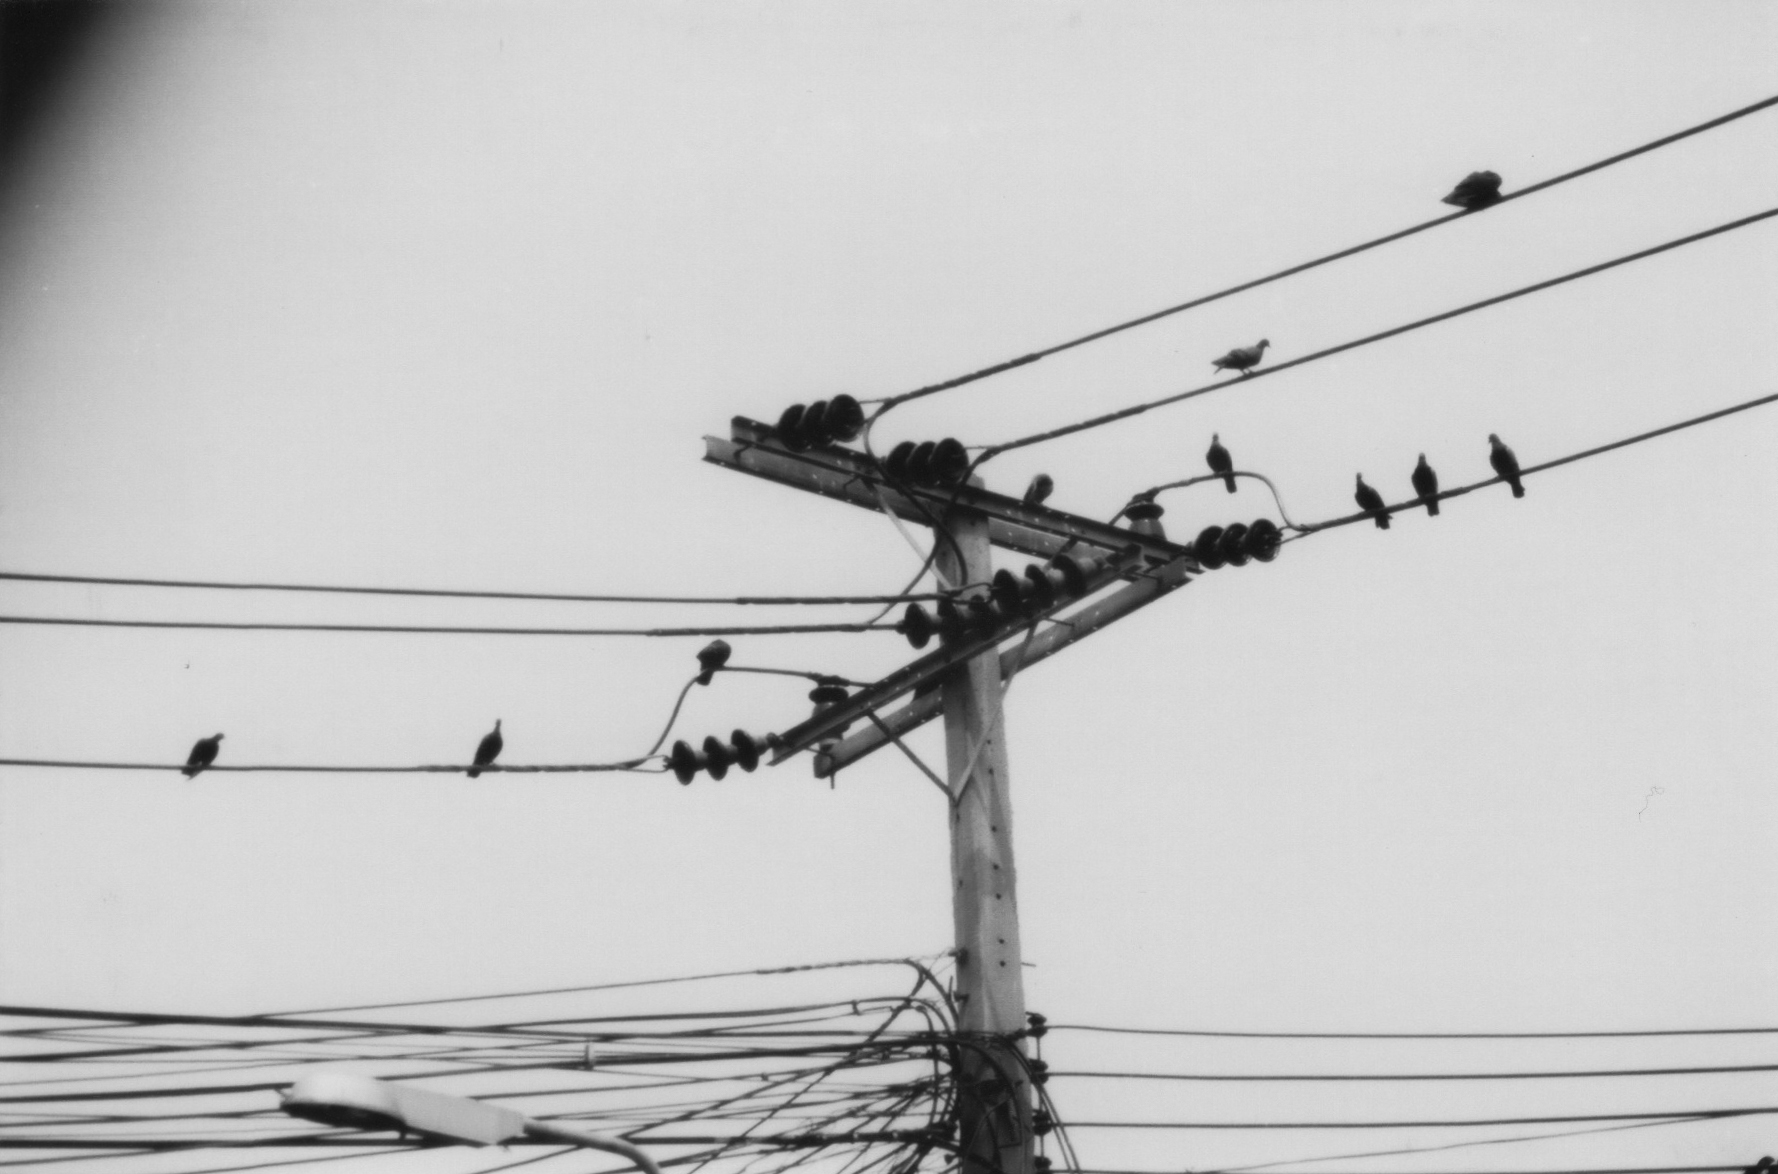 so apparently someone started to compose music from birds on wire.